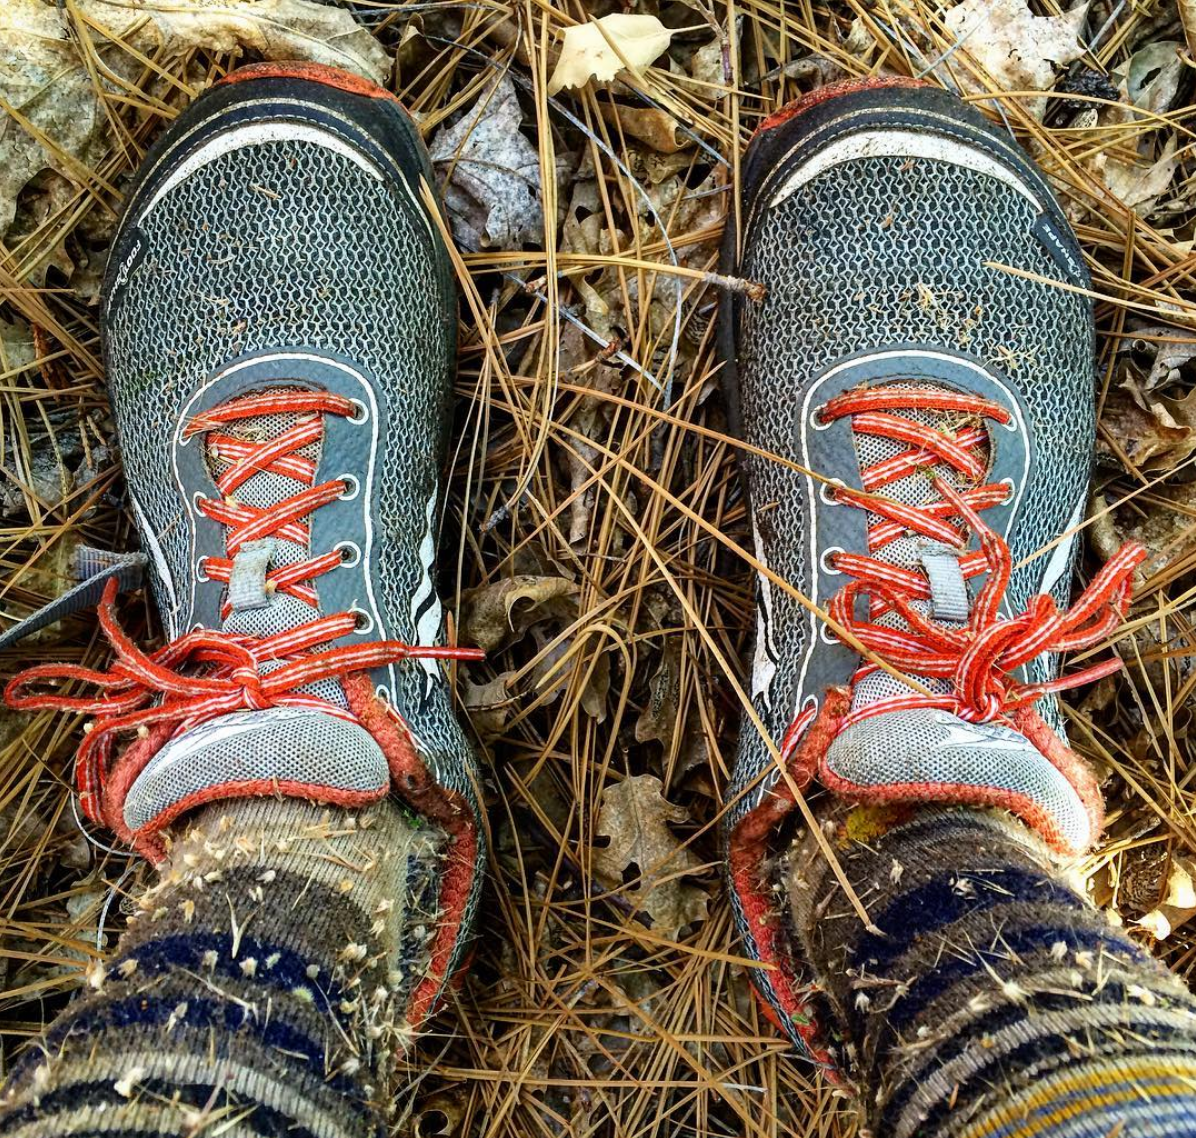 Alli's shoes and socks covered in burrs.